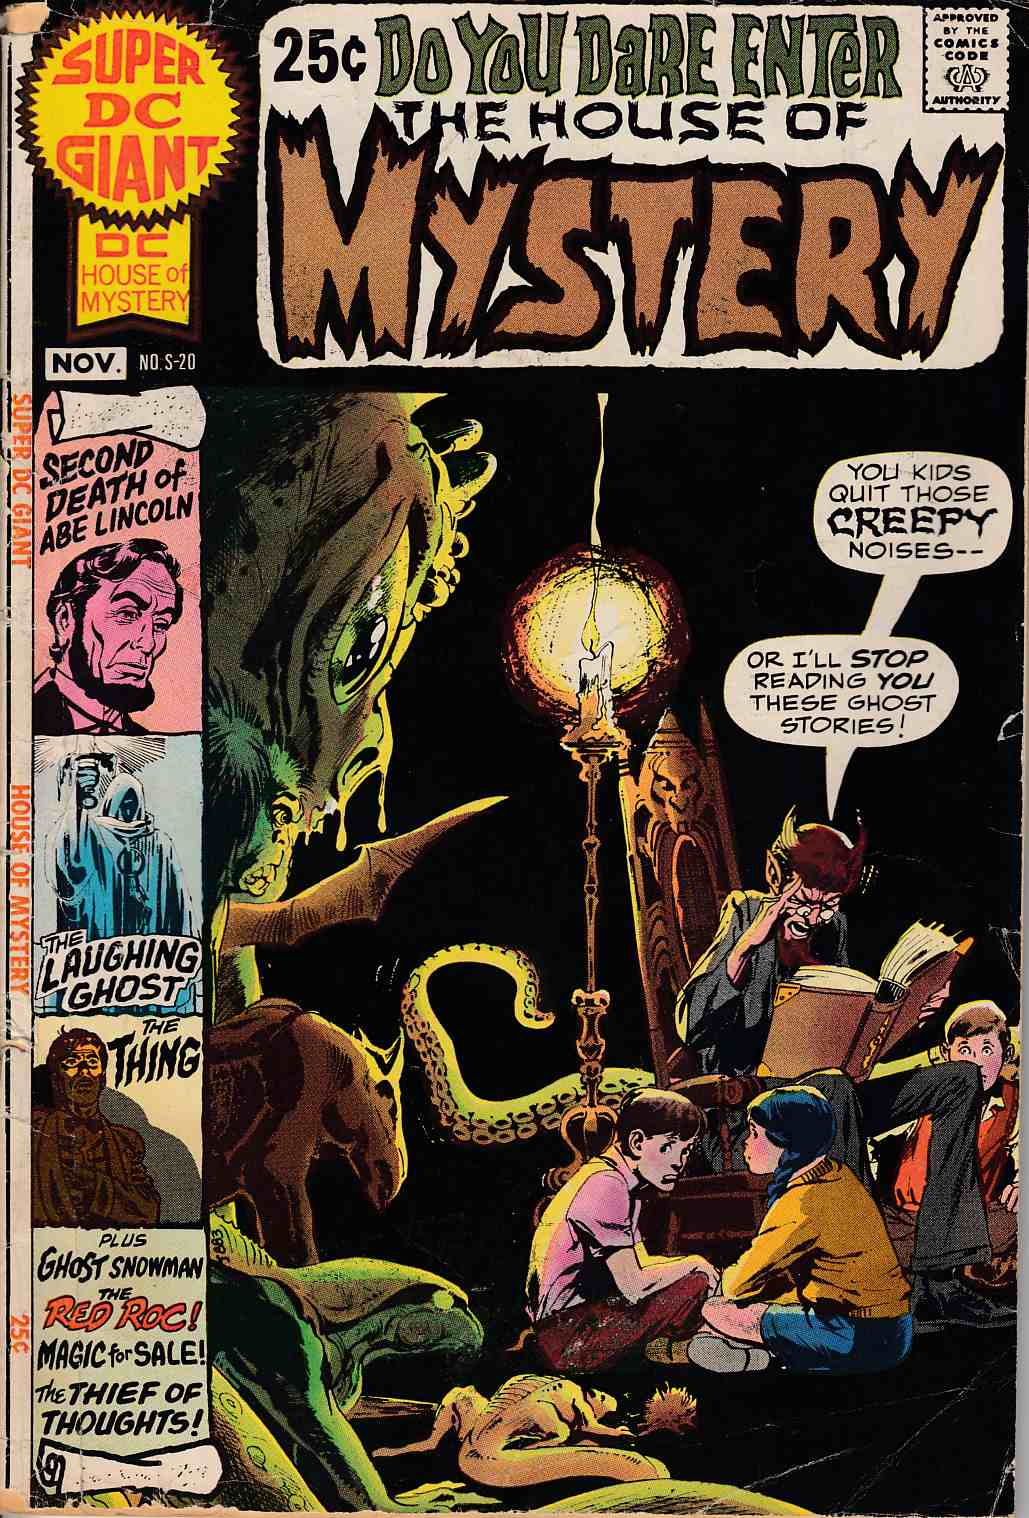 Super DC Giant #20 House of Mystery Good (2.0) [DC Comic]_THUMBNAIL